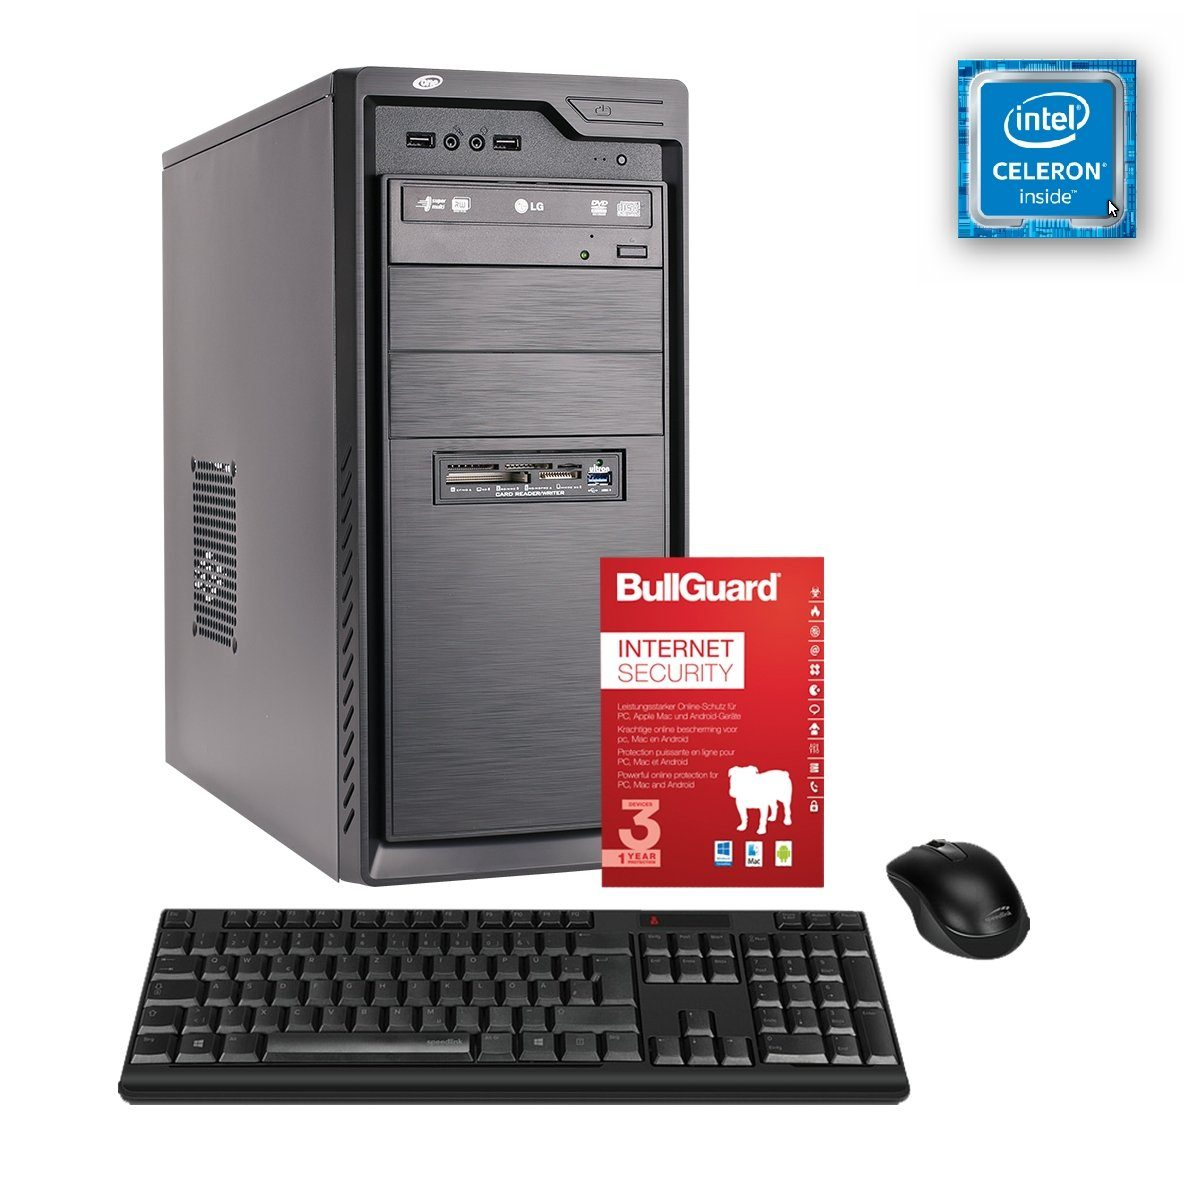 ONE PC, Celeron G4920, UHD Graphics 610, 8GB DDR4 RAM »PC 44066«